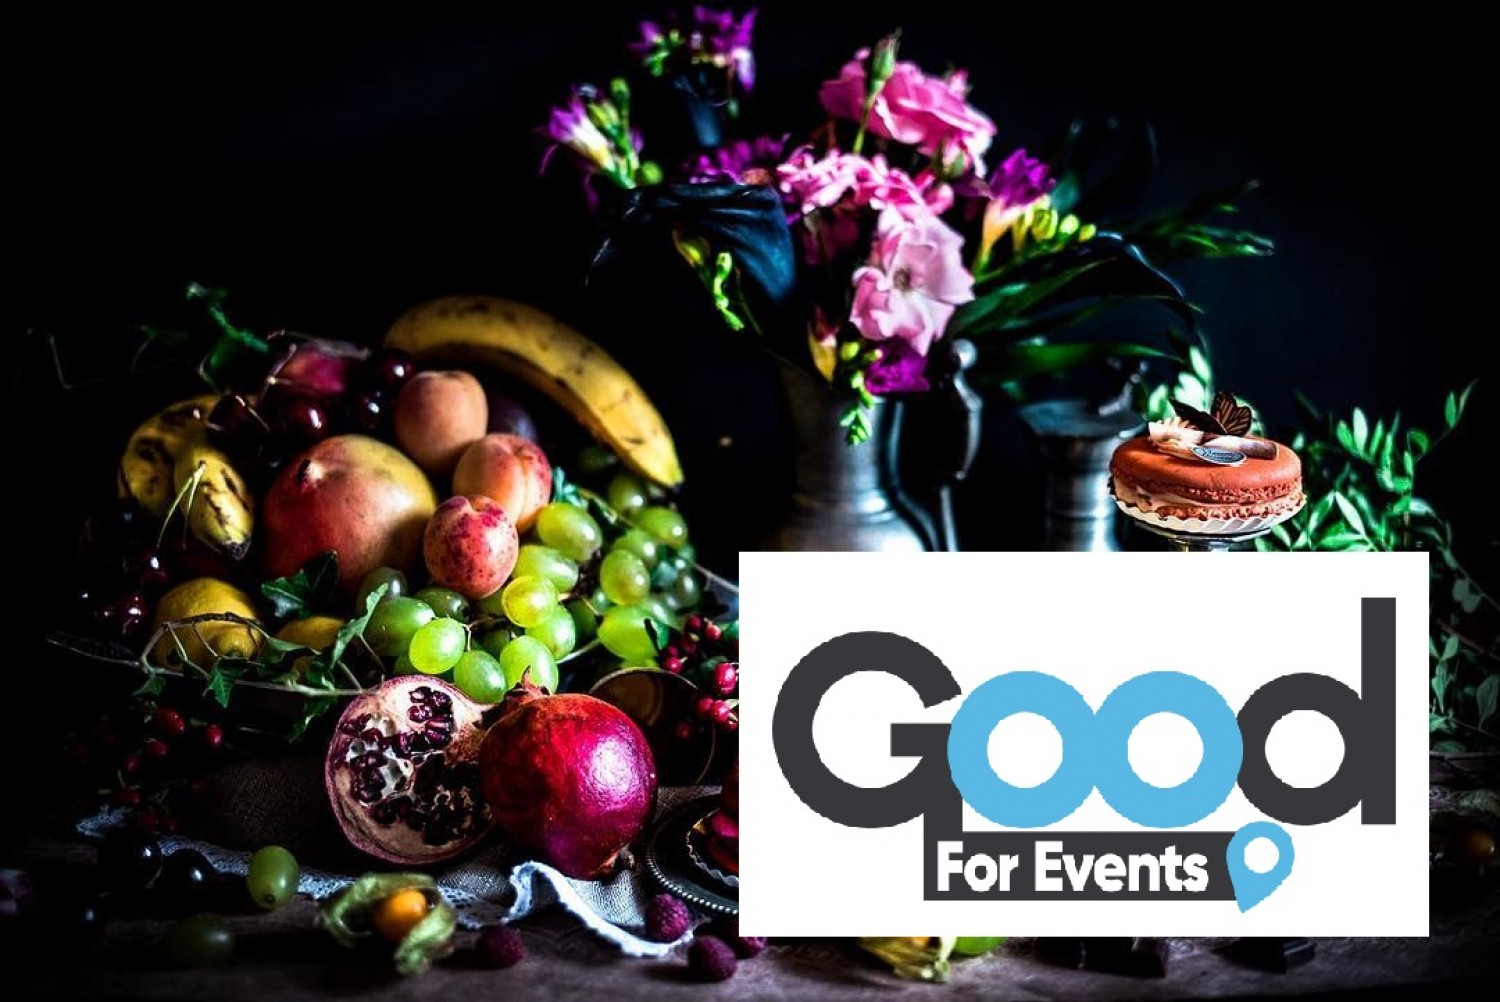 article good for events - Delphine Delamain I La crème gourmande de la photographie